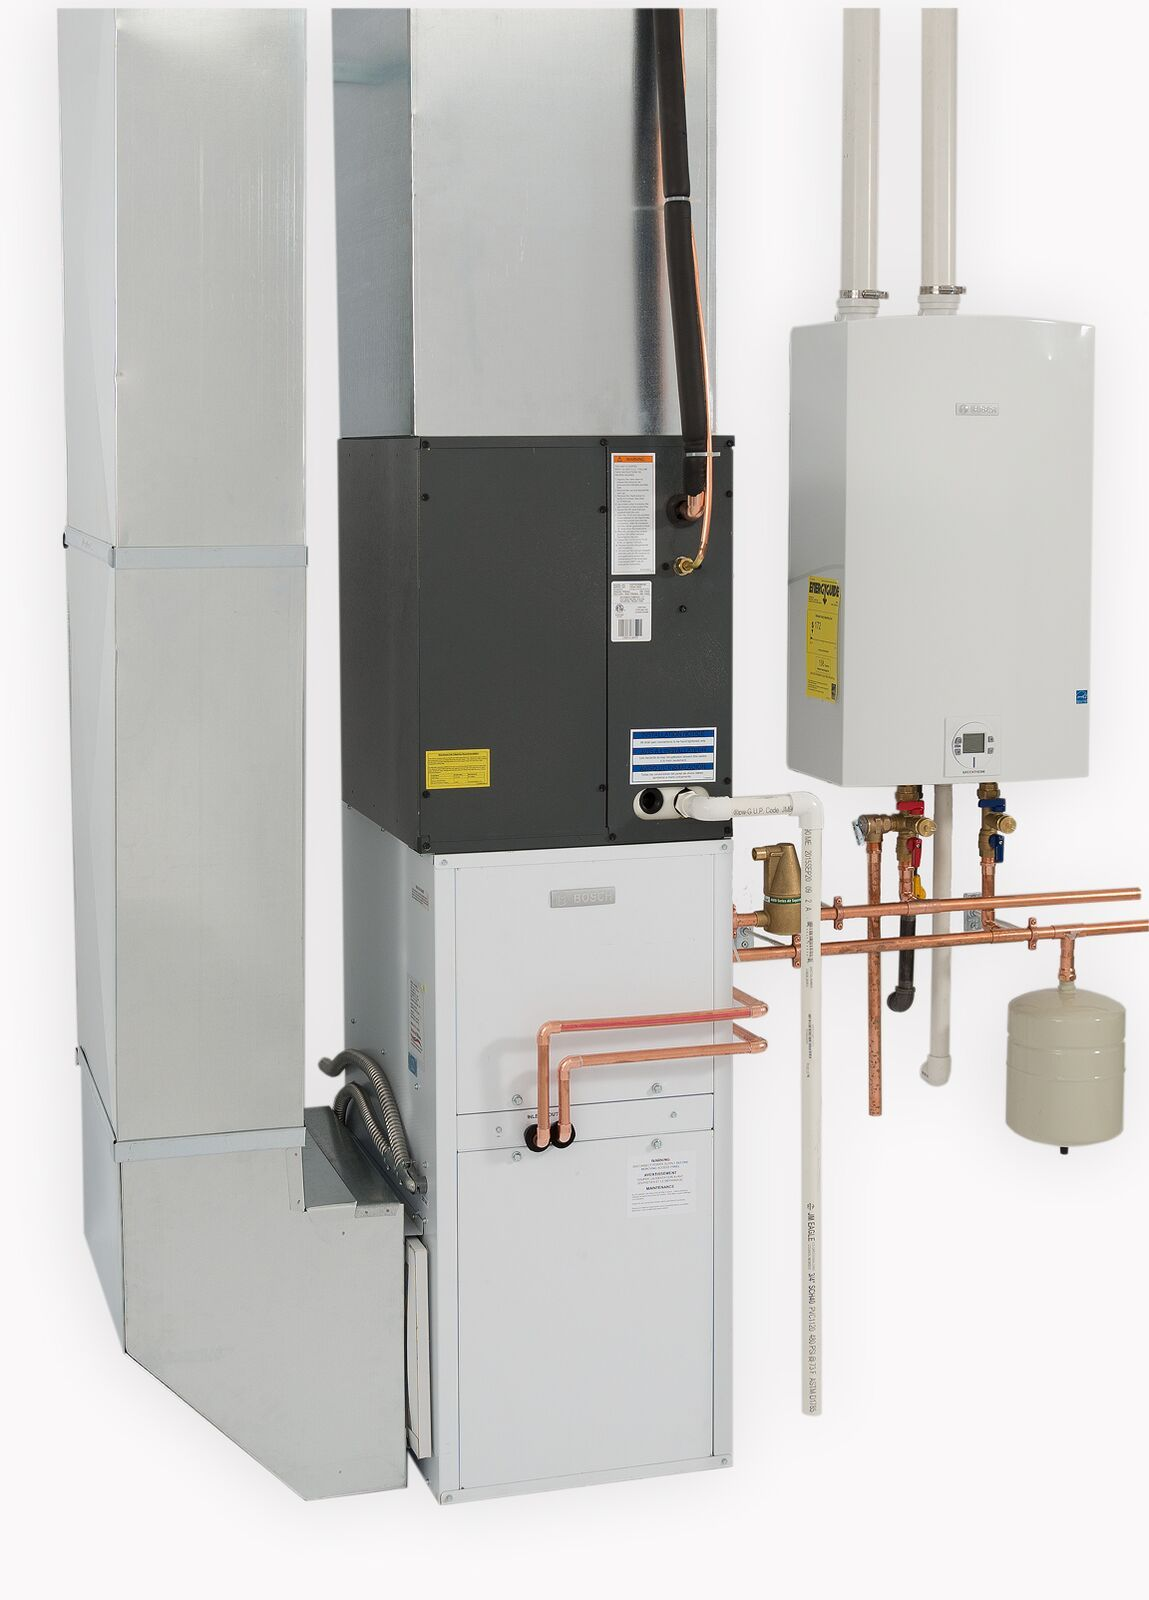 Air Handler Draws Warmth From Tankless Water Heater Tankless Water Heater Air Handler Water Heater